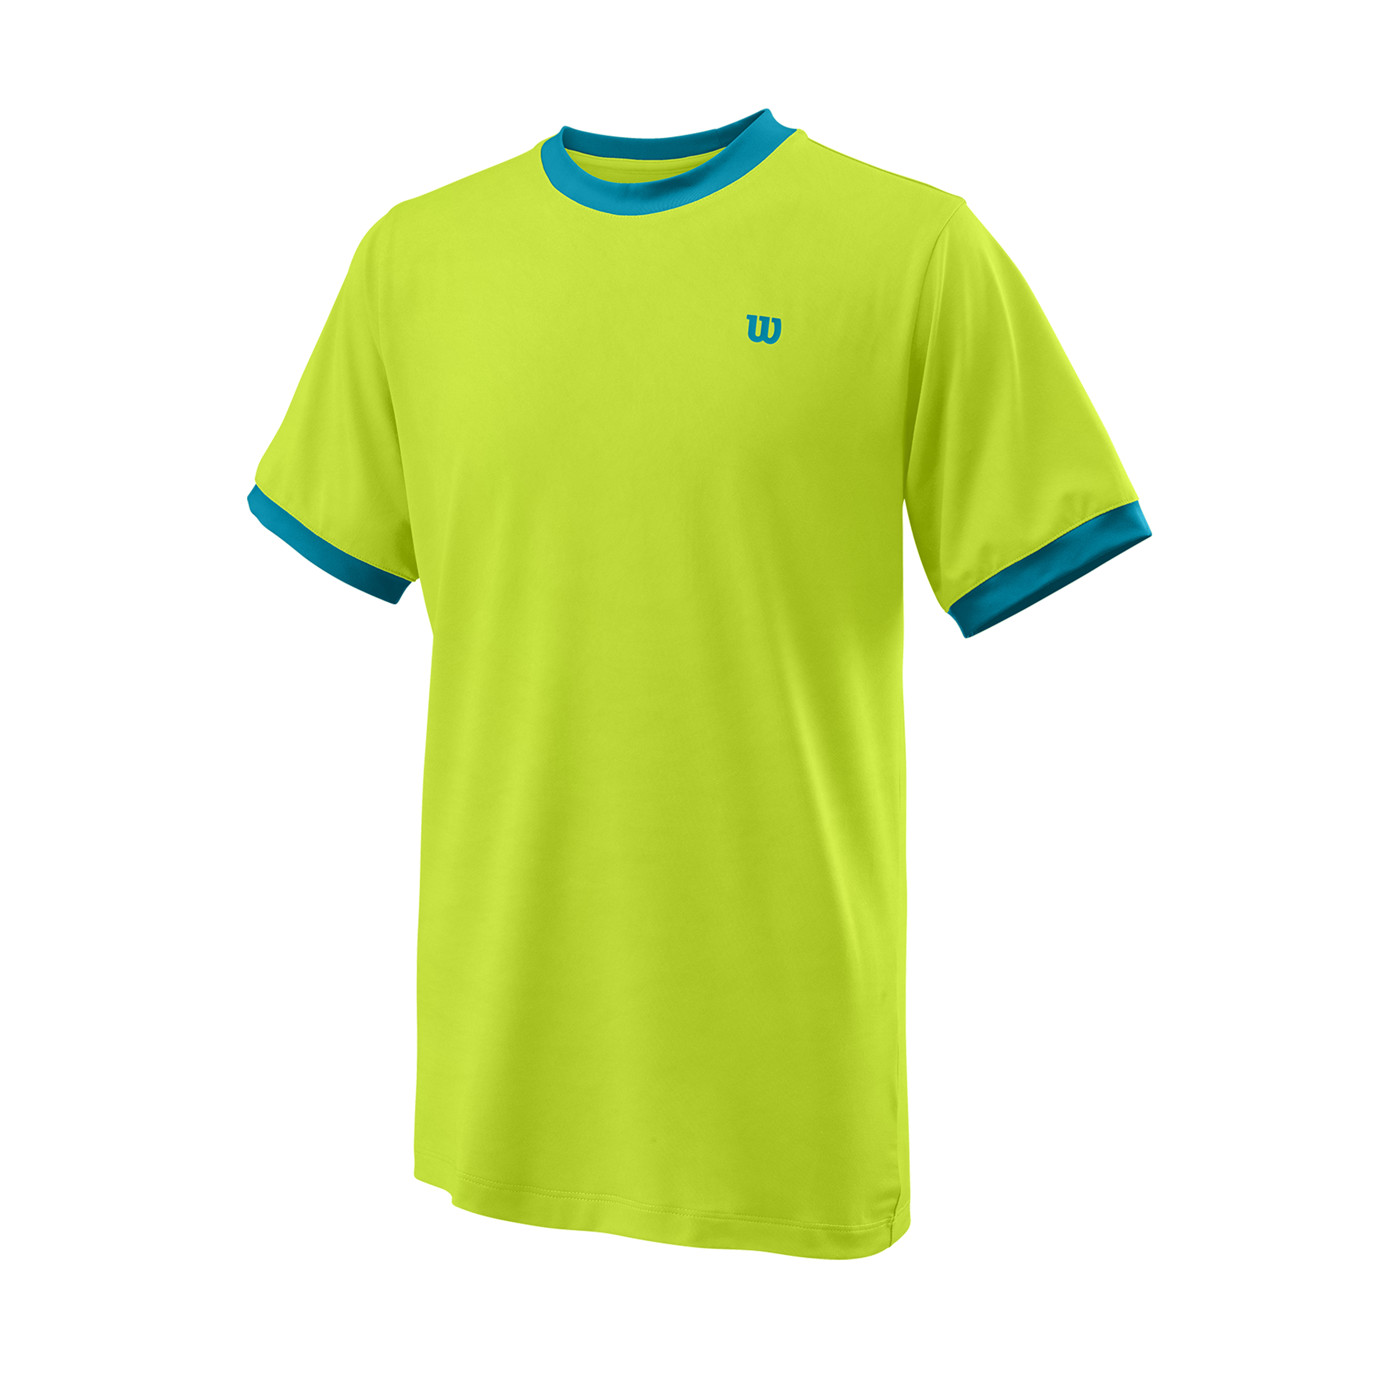 WILSON B COMPETITION CREW Lime Pop LG - Kinder